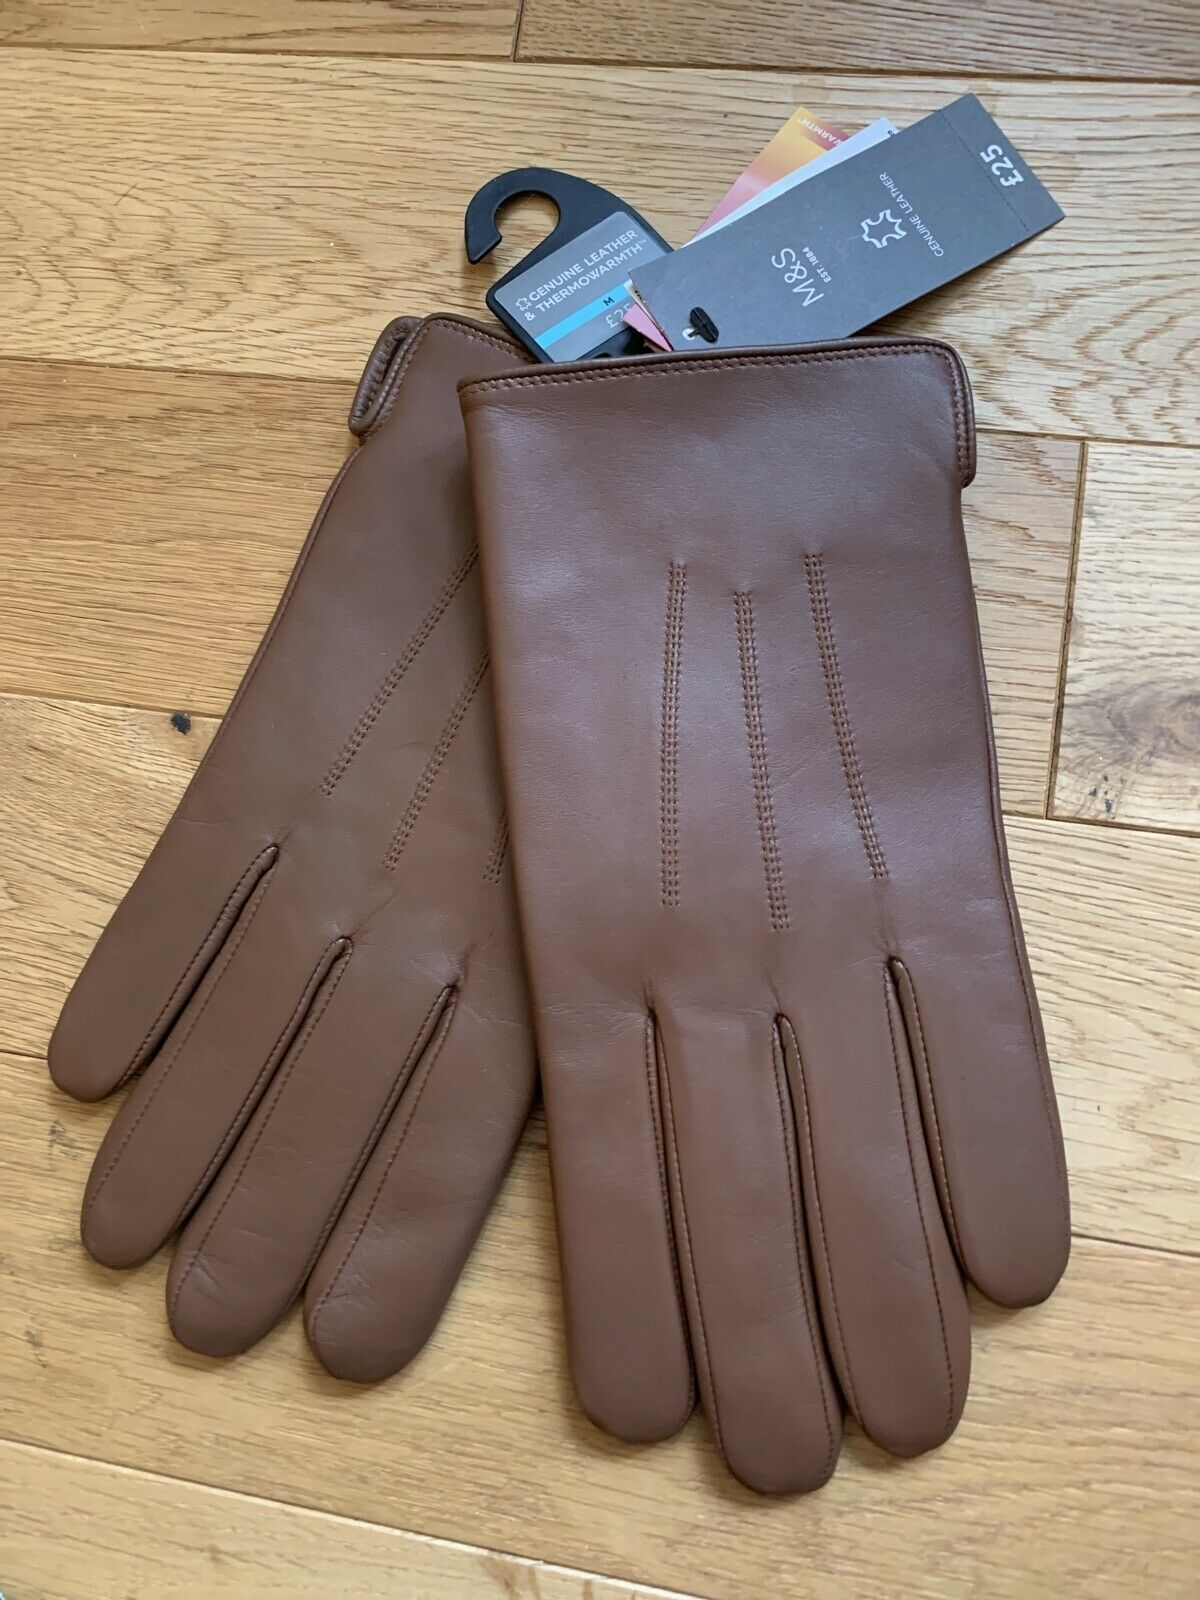 BNWT - Marks Spencer Mens Tan Leather Gloves Thermowarmth lining size Medium